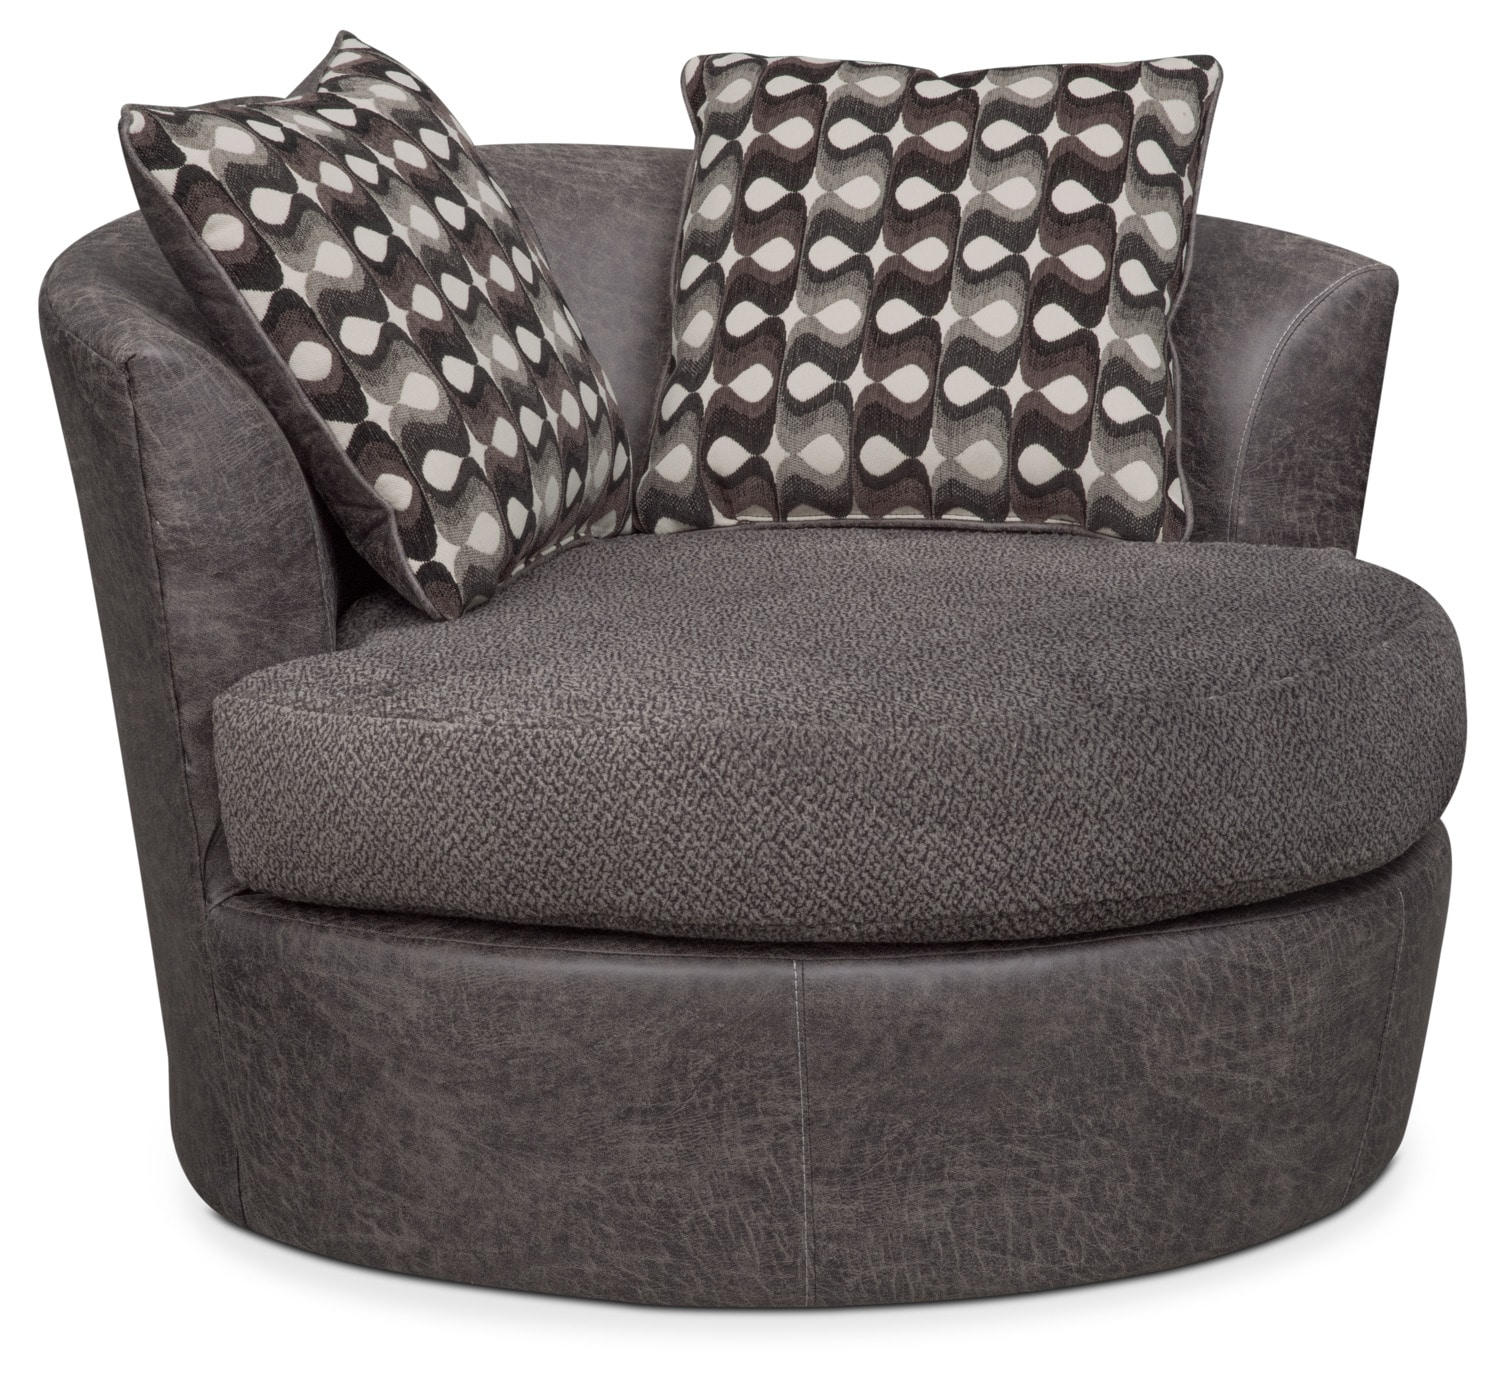 Brando Swivel Chair - Smoke  sc 1 st  American Signature Furniture & Living Room Chairs | American Signature | American Signature Furniture